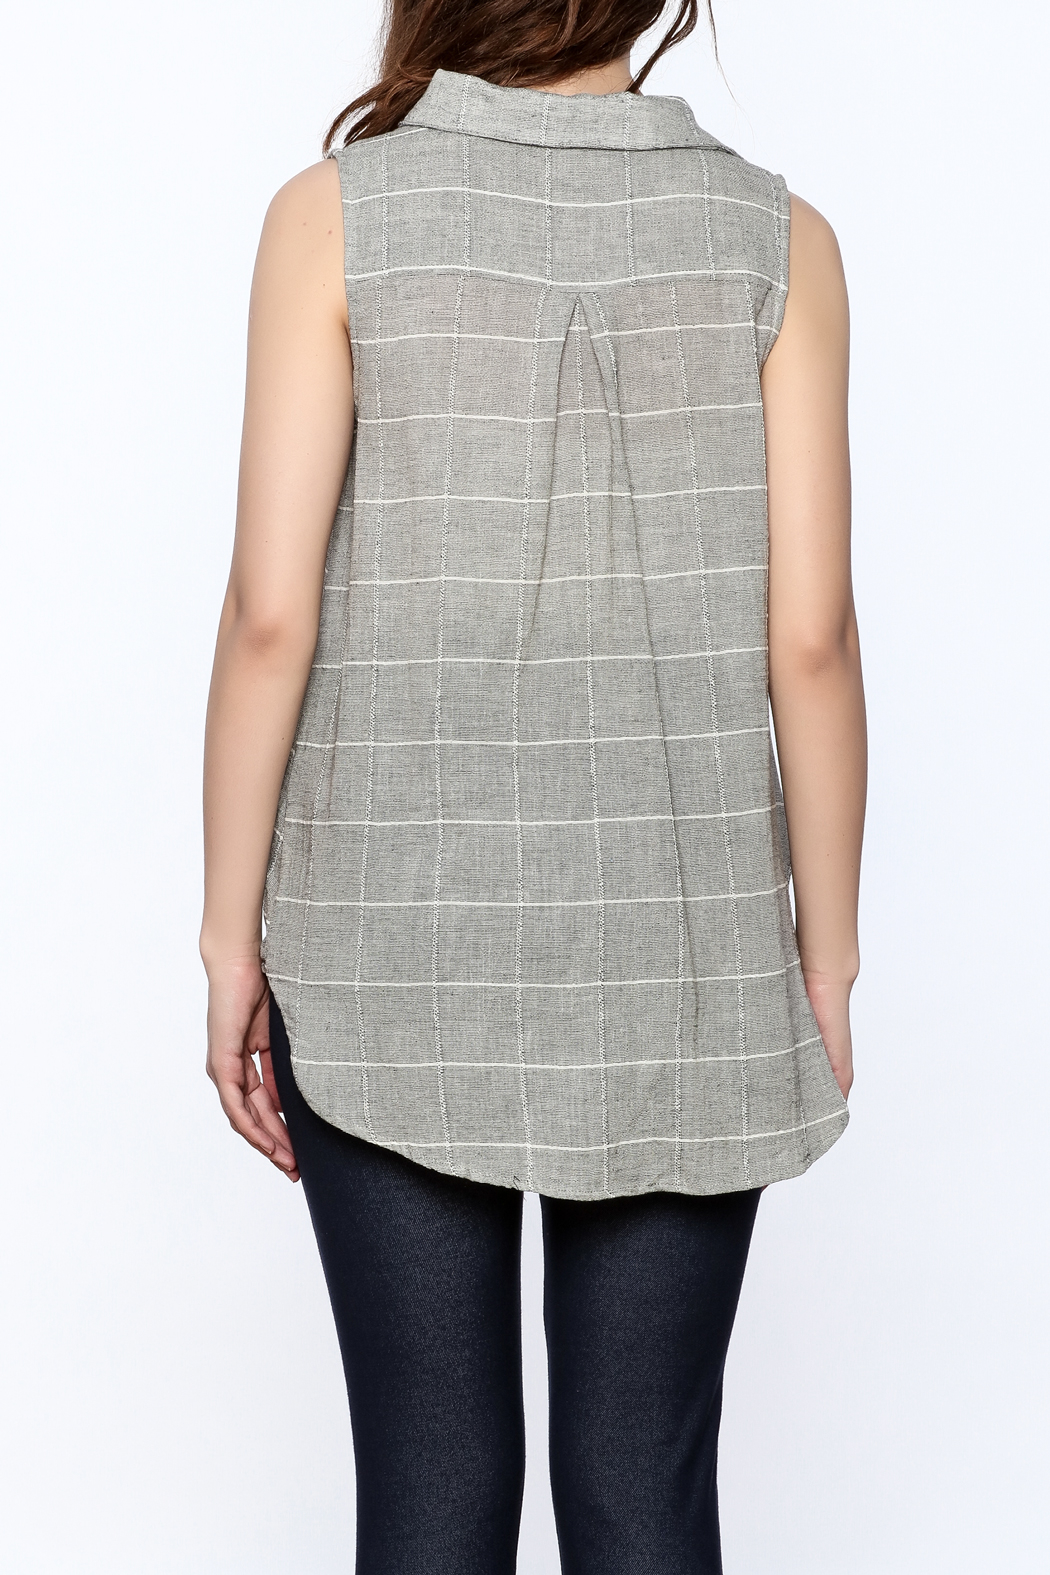 Jella Couture Grey Sleeveless Billowy Top - Back Cropped Image